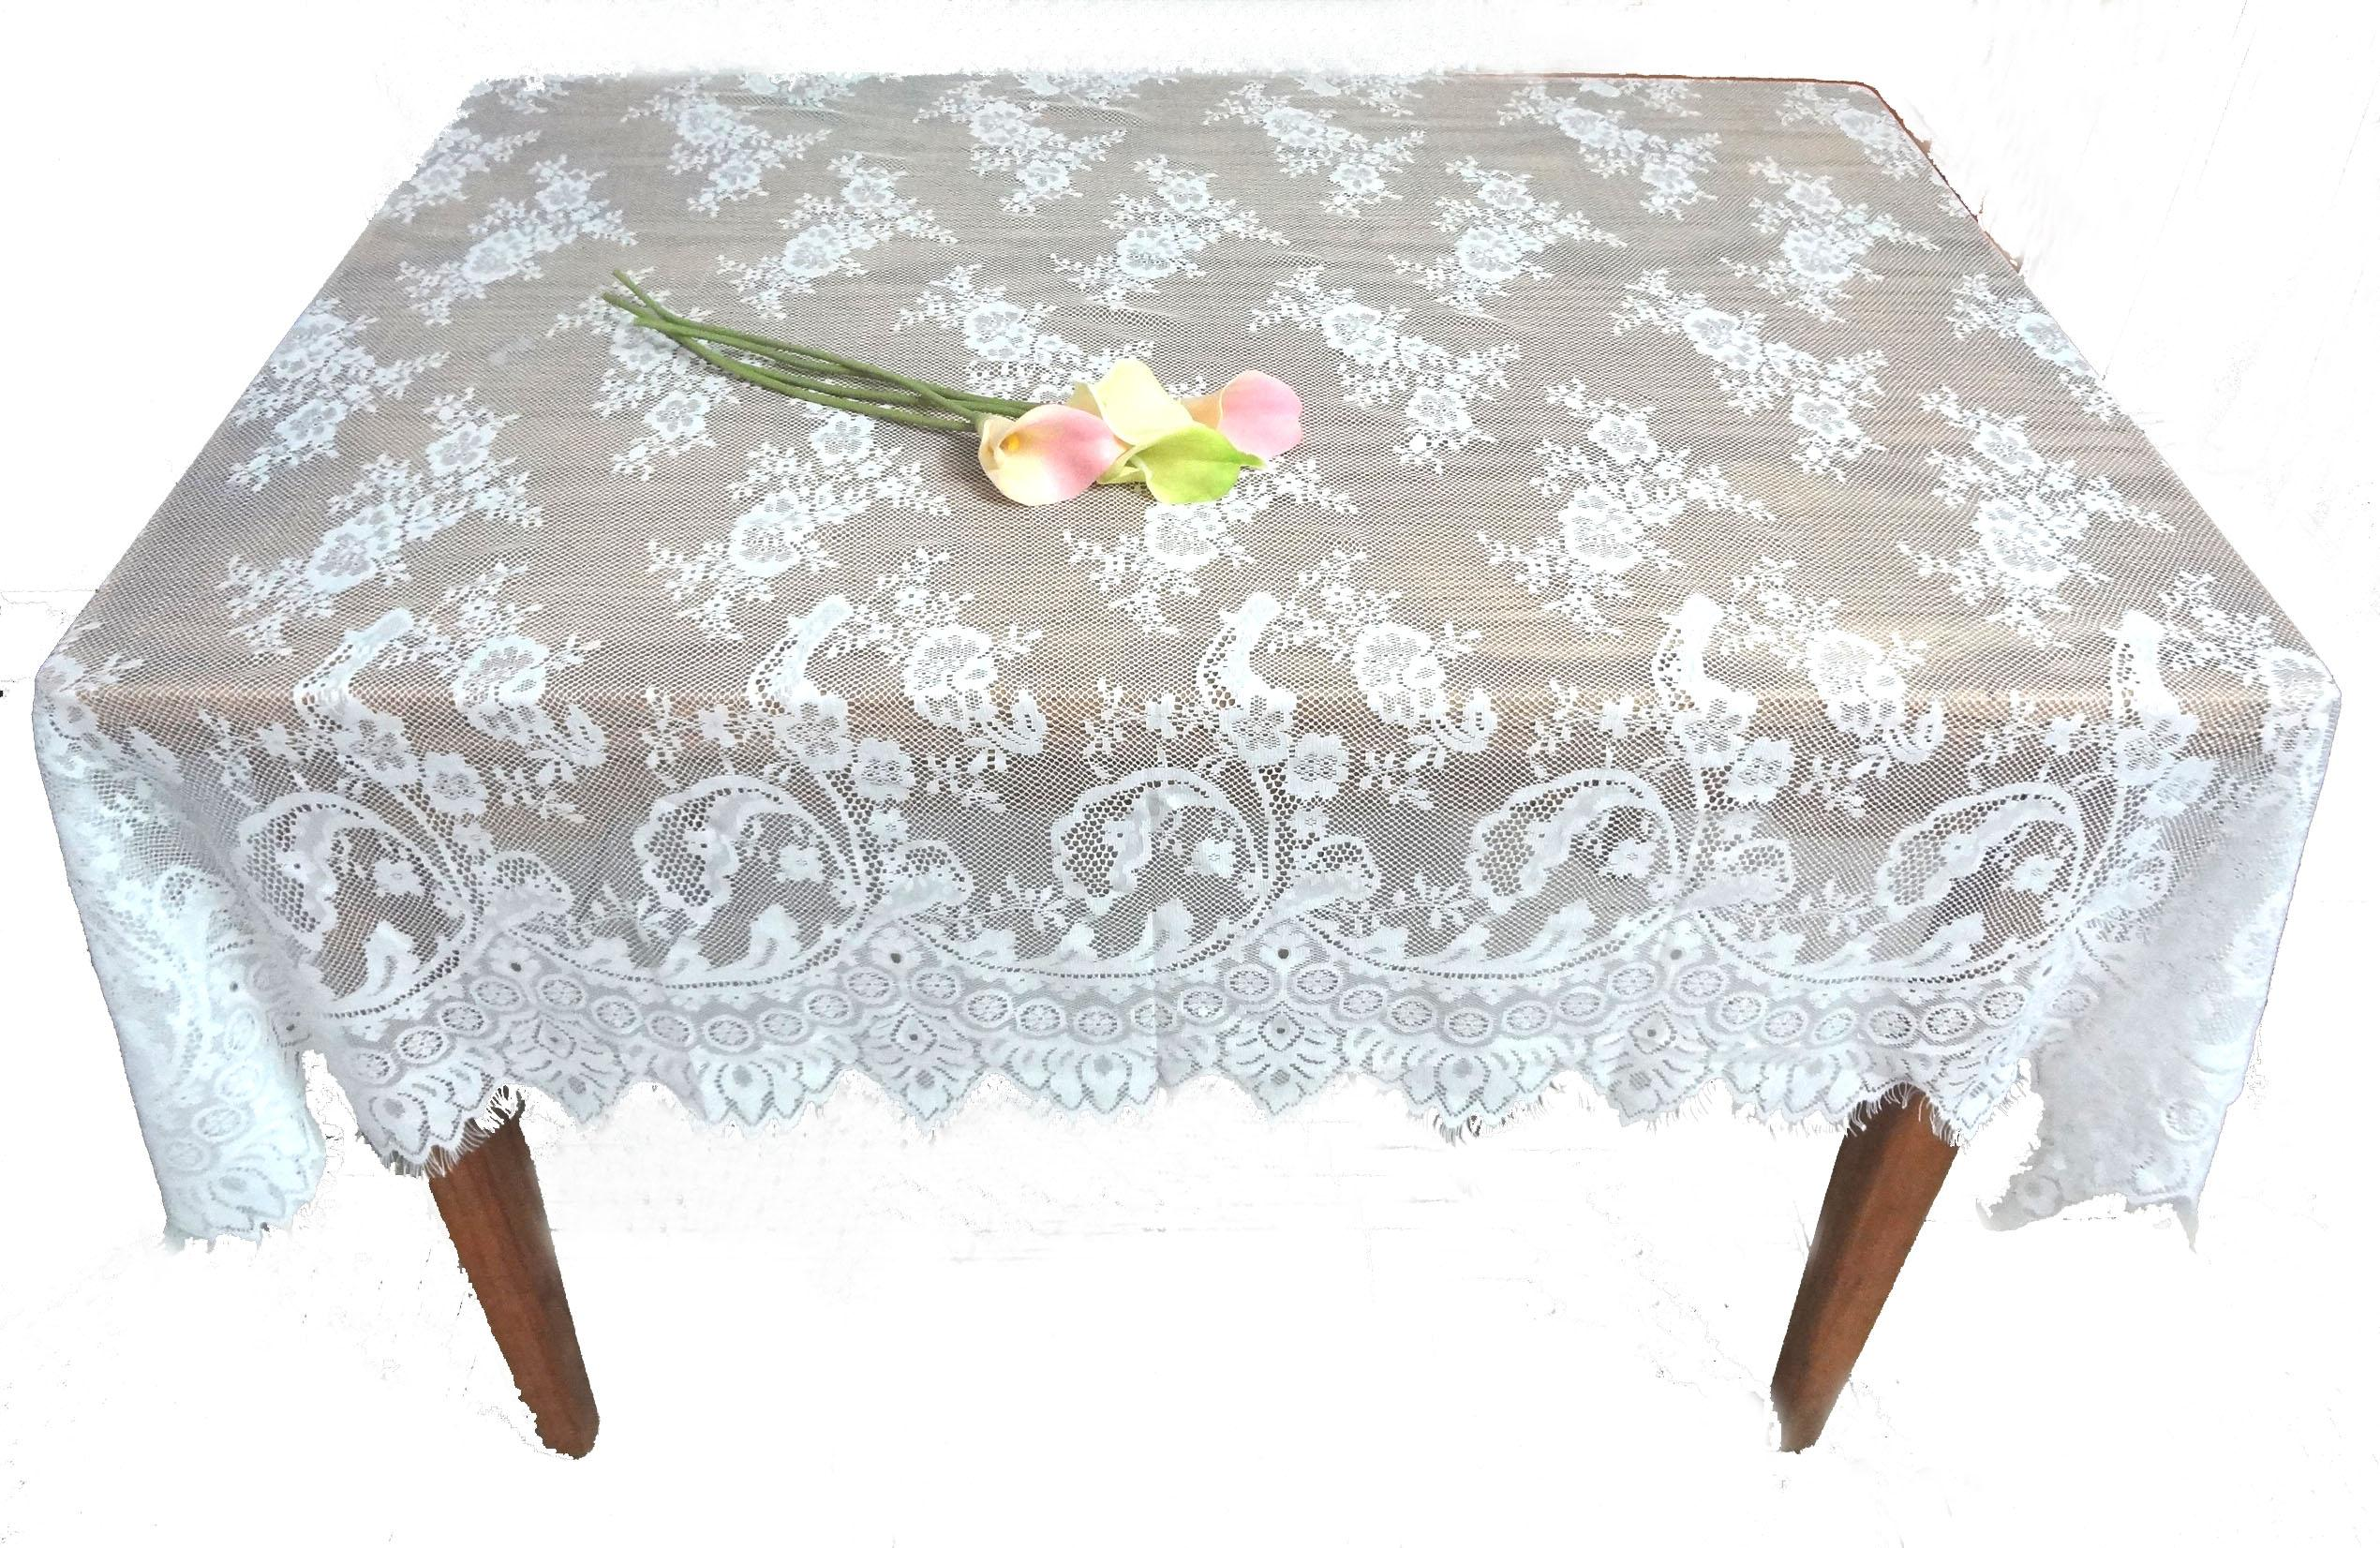 130*150cm Oblong Lace Jacquard Wedding Tablecloths Party Home Decor ...